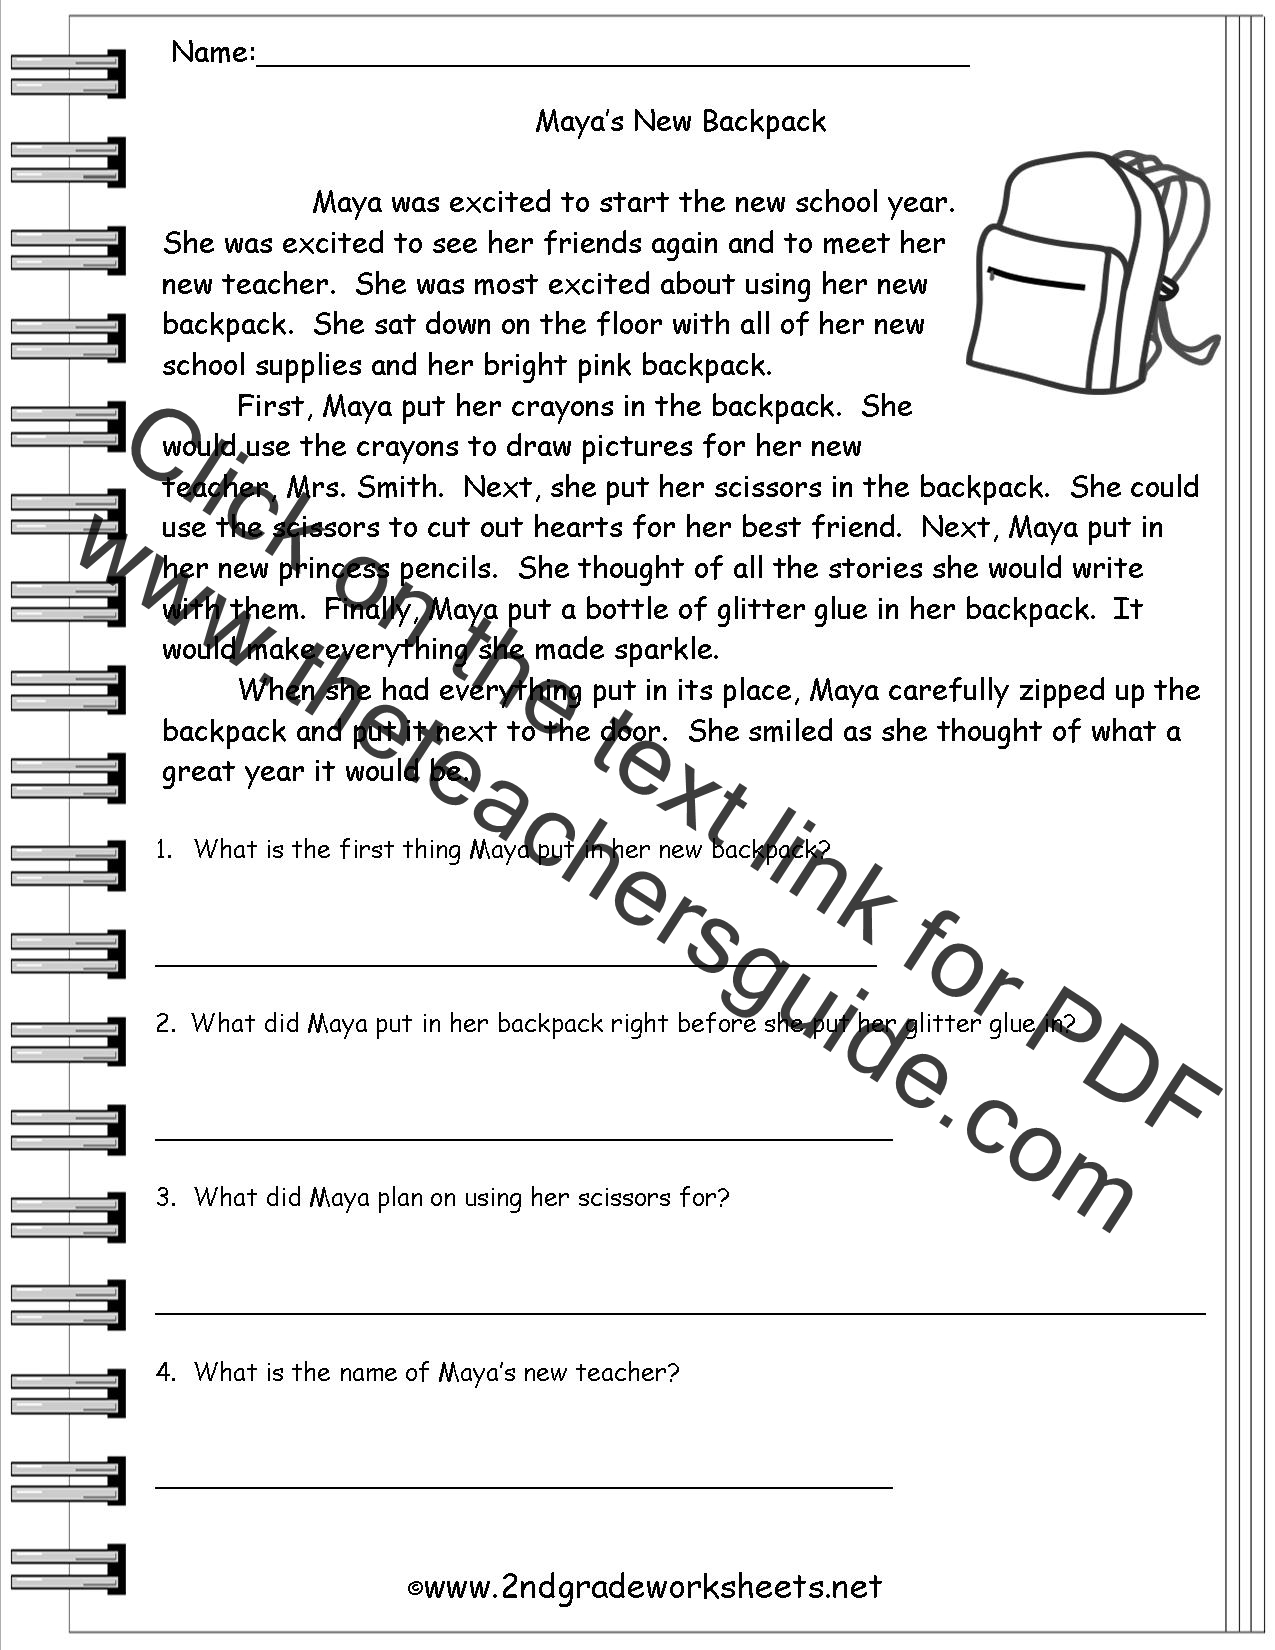 Worksheet Grade 3 Reading Comprehension Worksheet reading comprehension worksheet grade 3 scalien download pdf worksheets